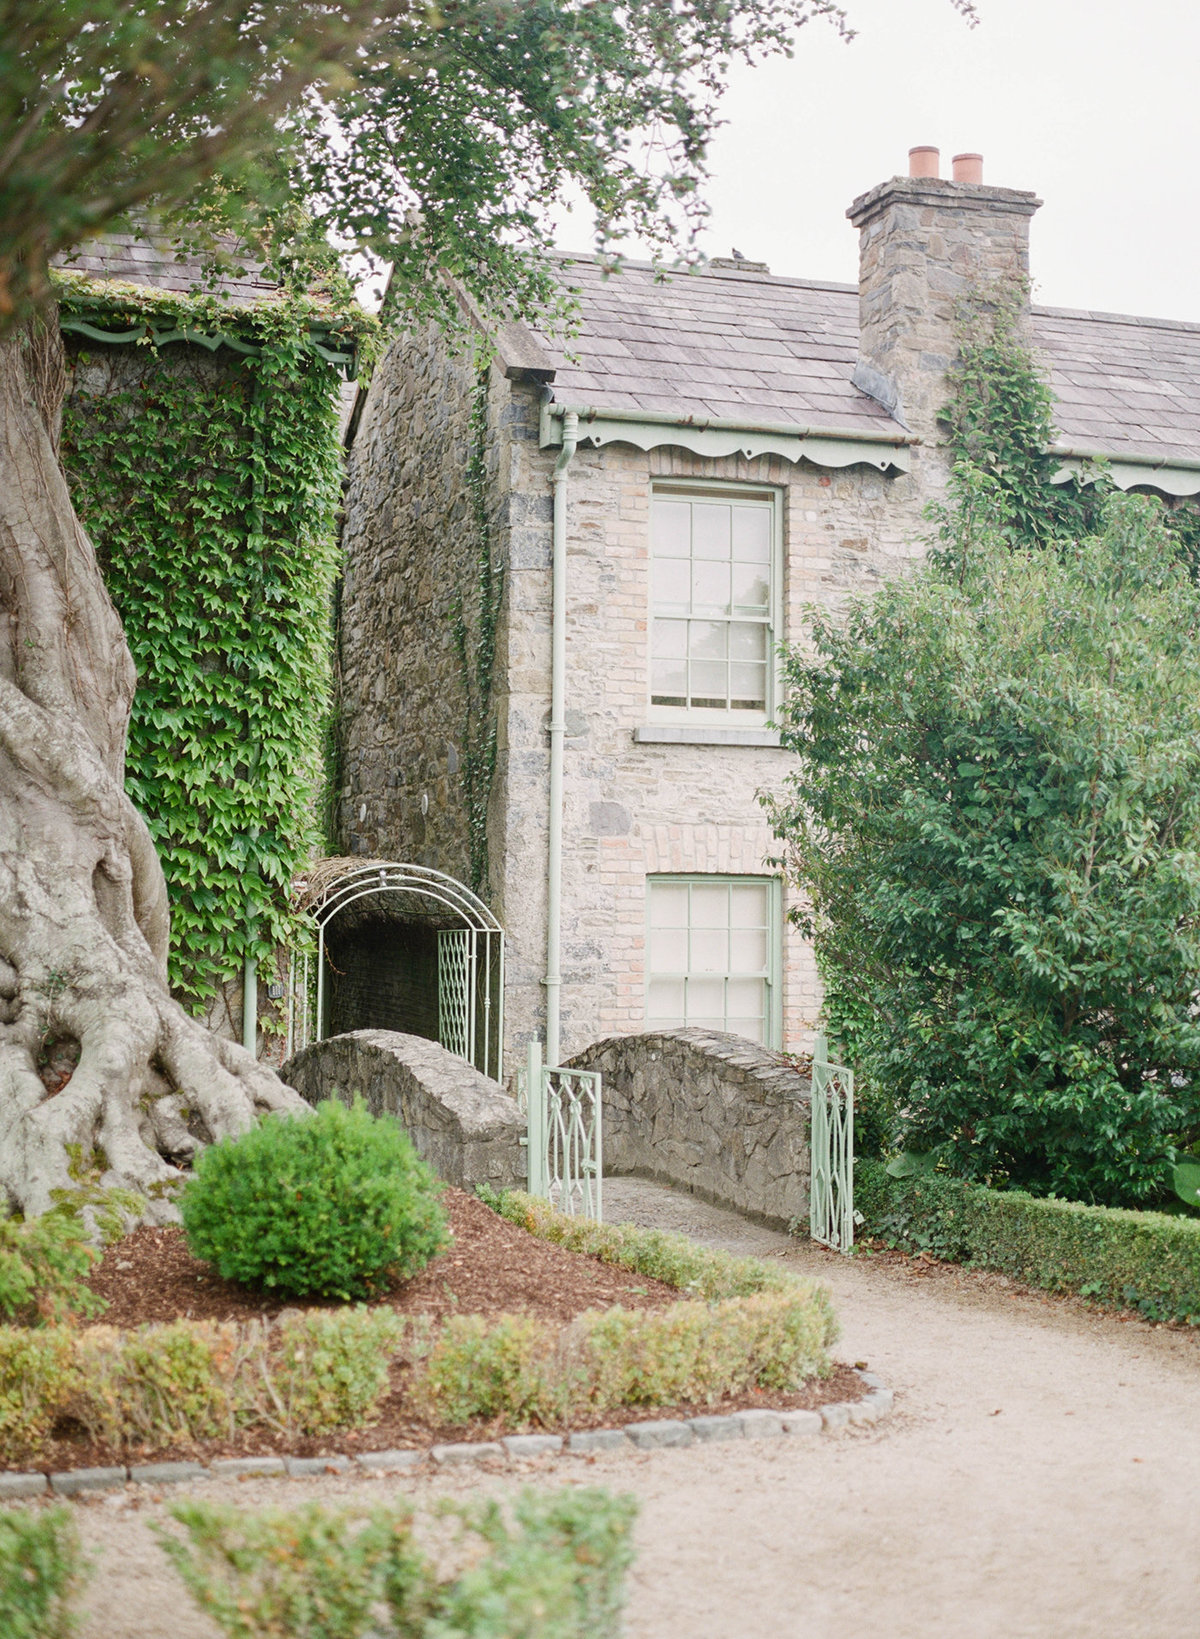 Destination Wedding Photographer - Ireland Editorial - Cliff at Lyons Kildare Ireland - Sarah Sunstrom Photography - 3